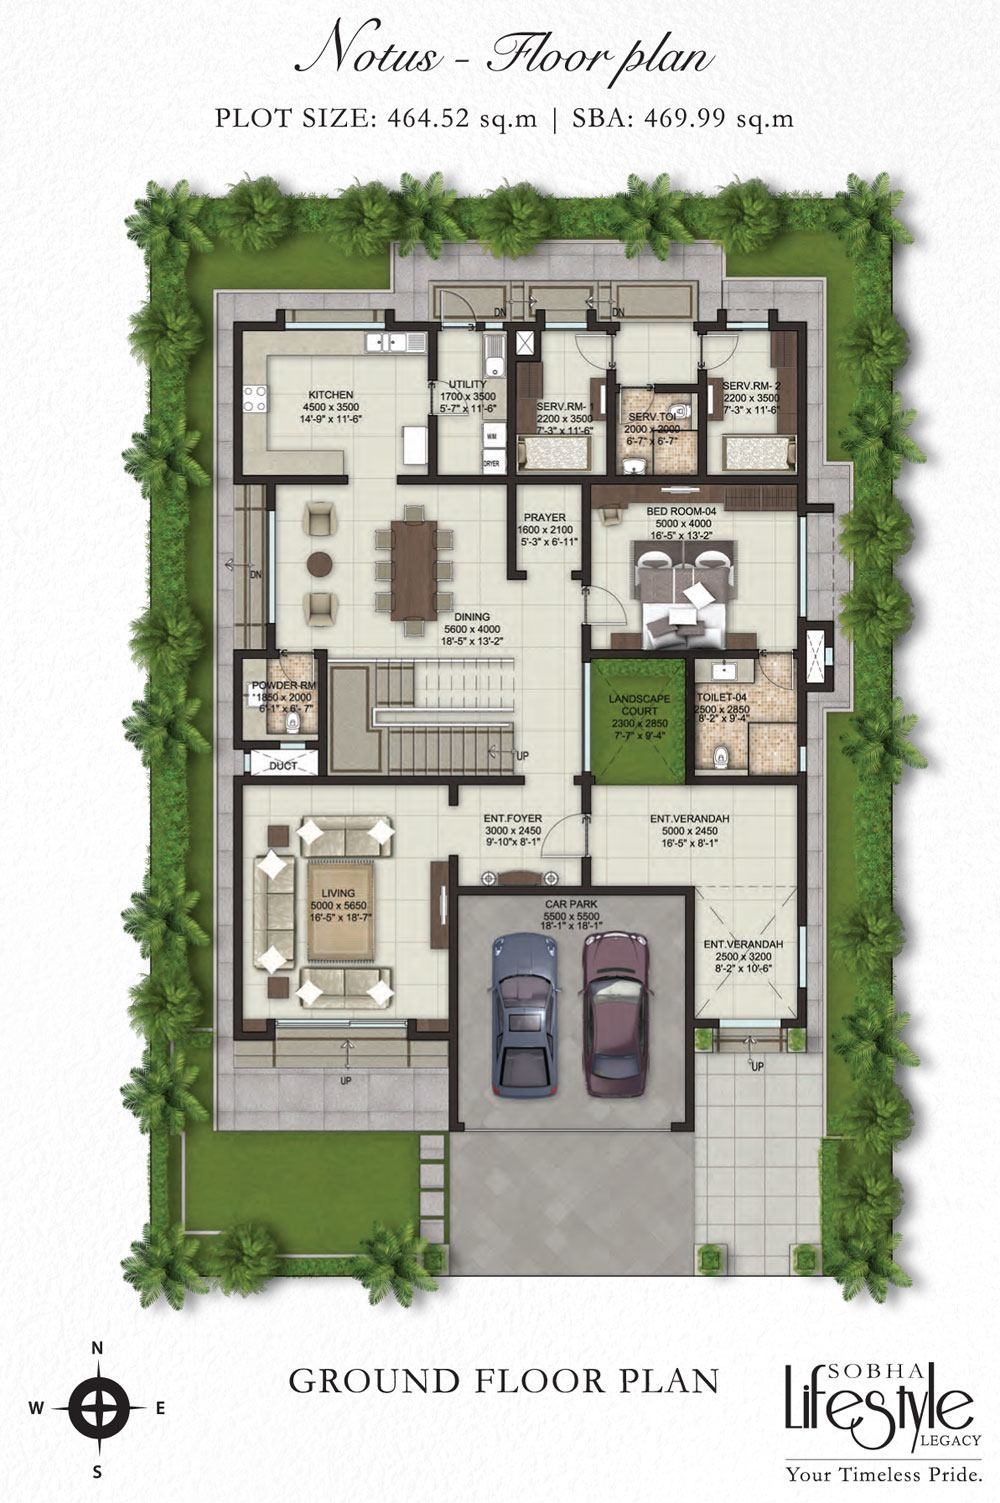 Sobha Lifestyle Legacy 4 Bedroom Villas Bangalore